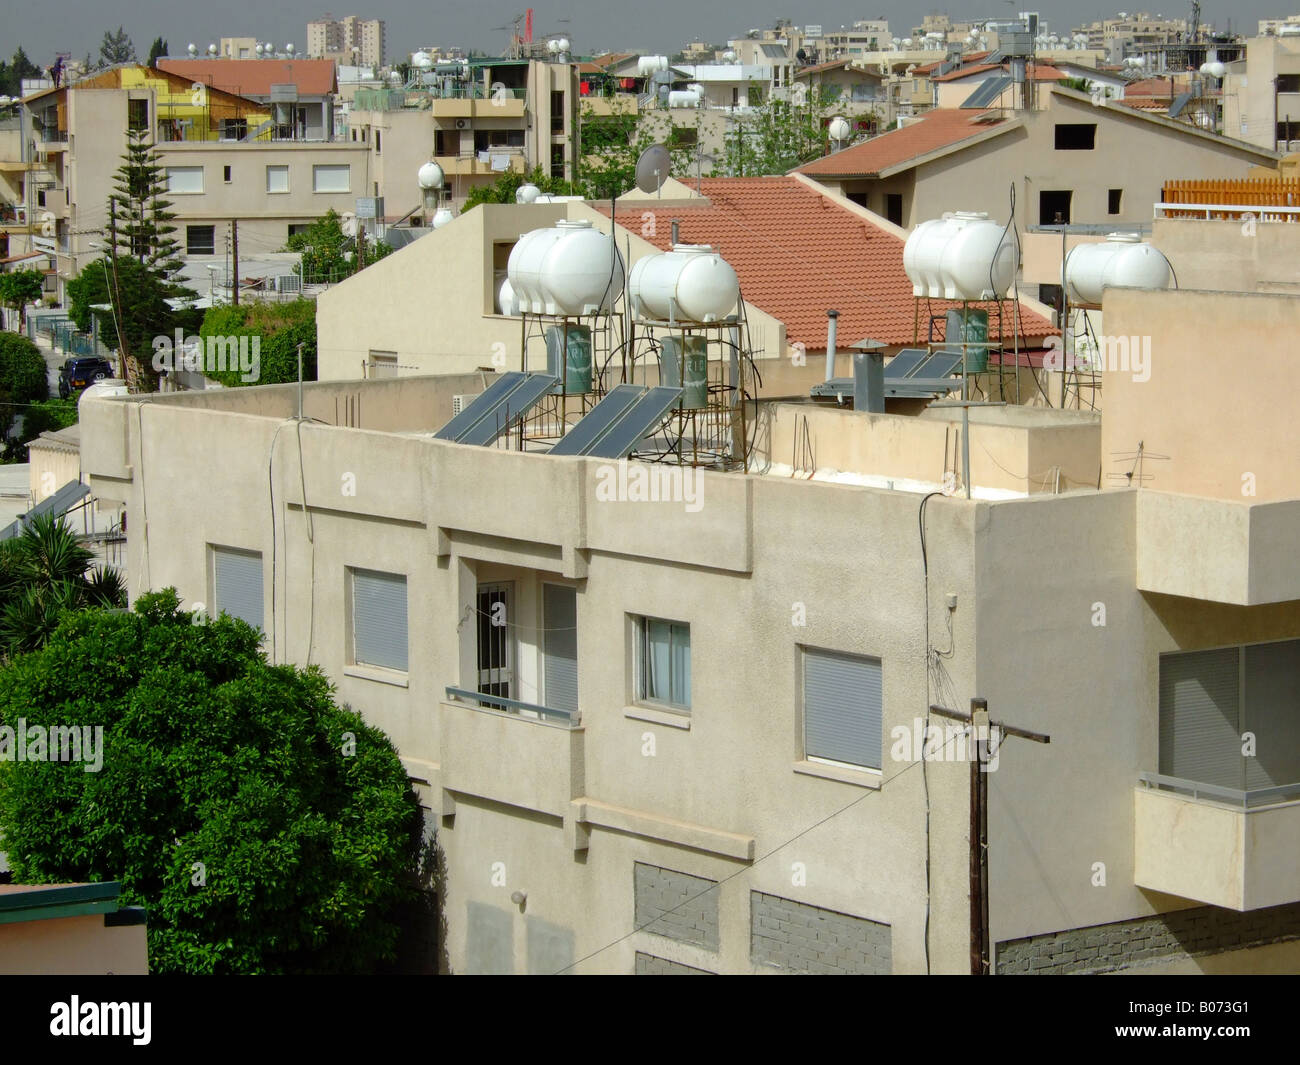 Domestic solar heated water supplies on rooftops. Limassol, Cyprus. - Stock Image